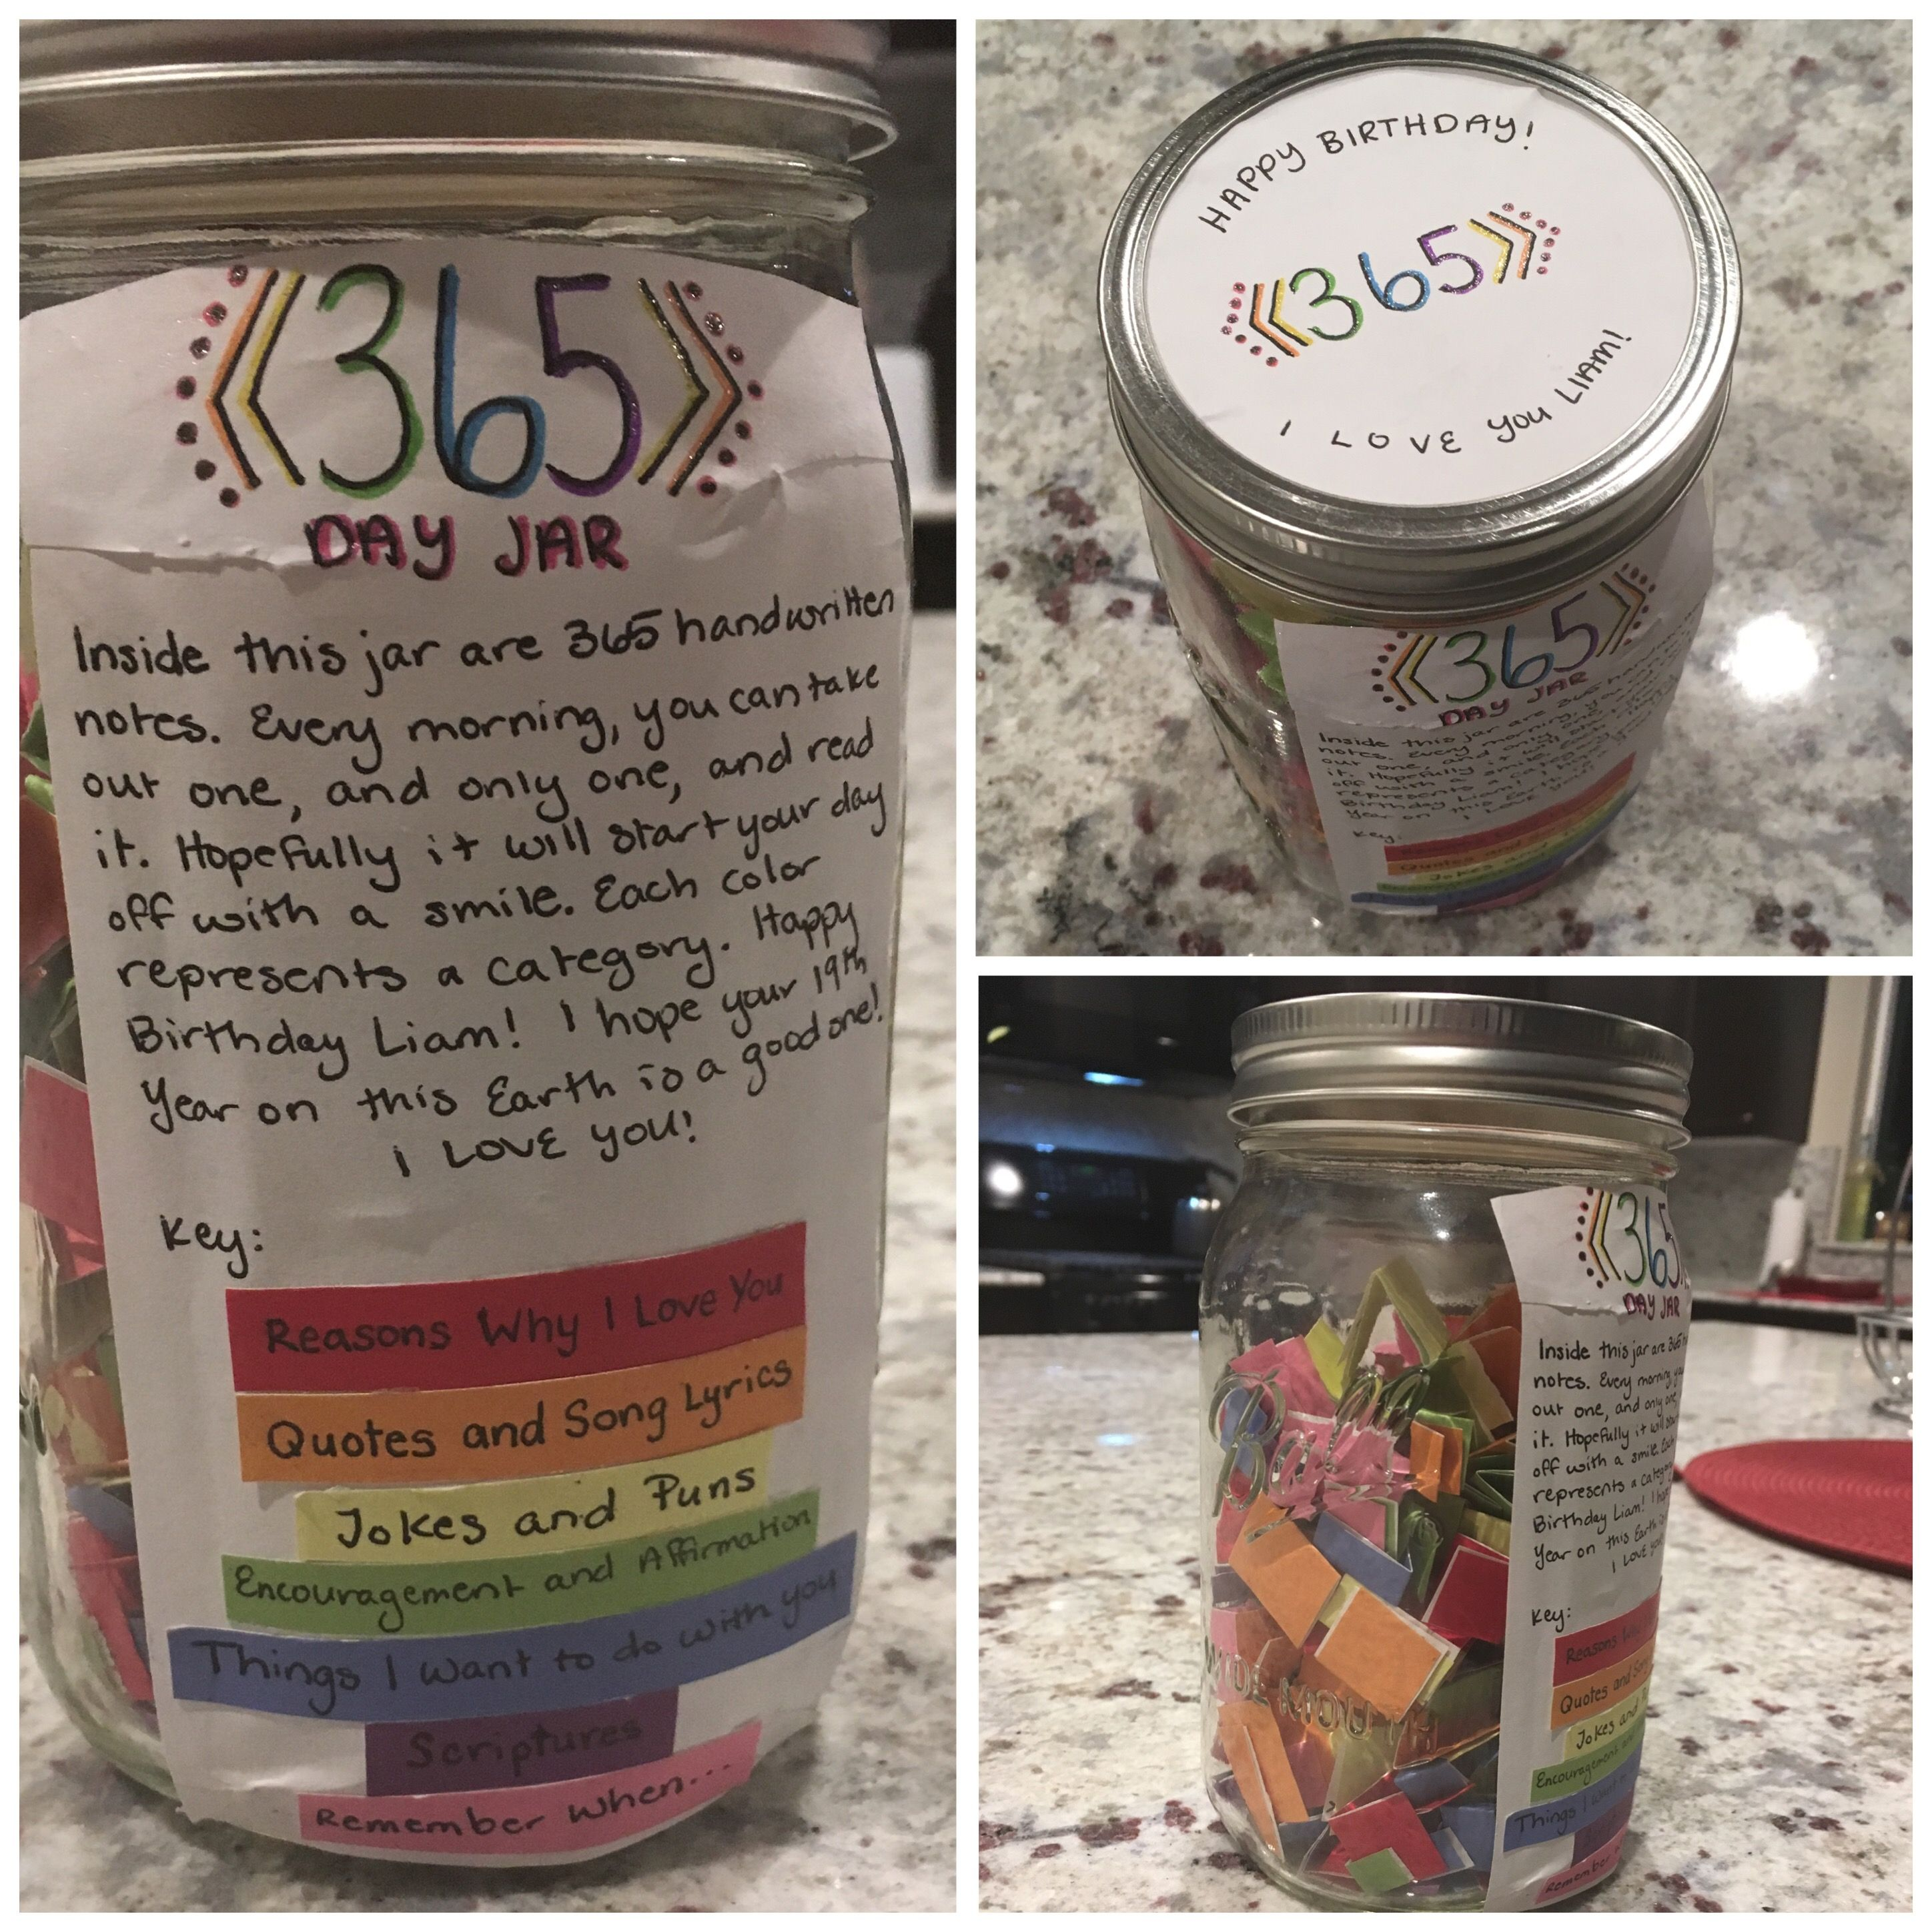 365 Jar Done For My Boyfriend Cute Way To Make A Present Last For A Year Cute Boyfriend Gifts Diy Gifts In A Jar Happy Jar